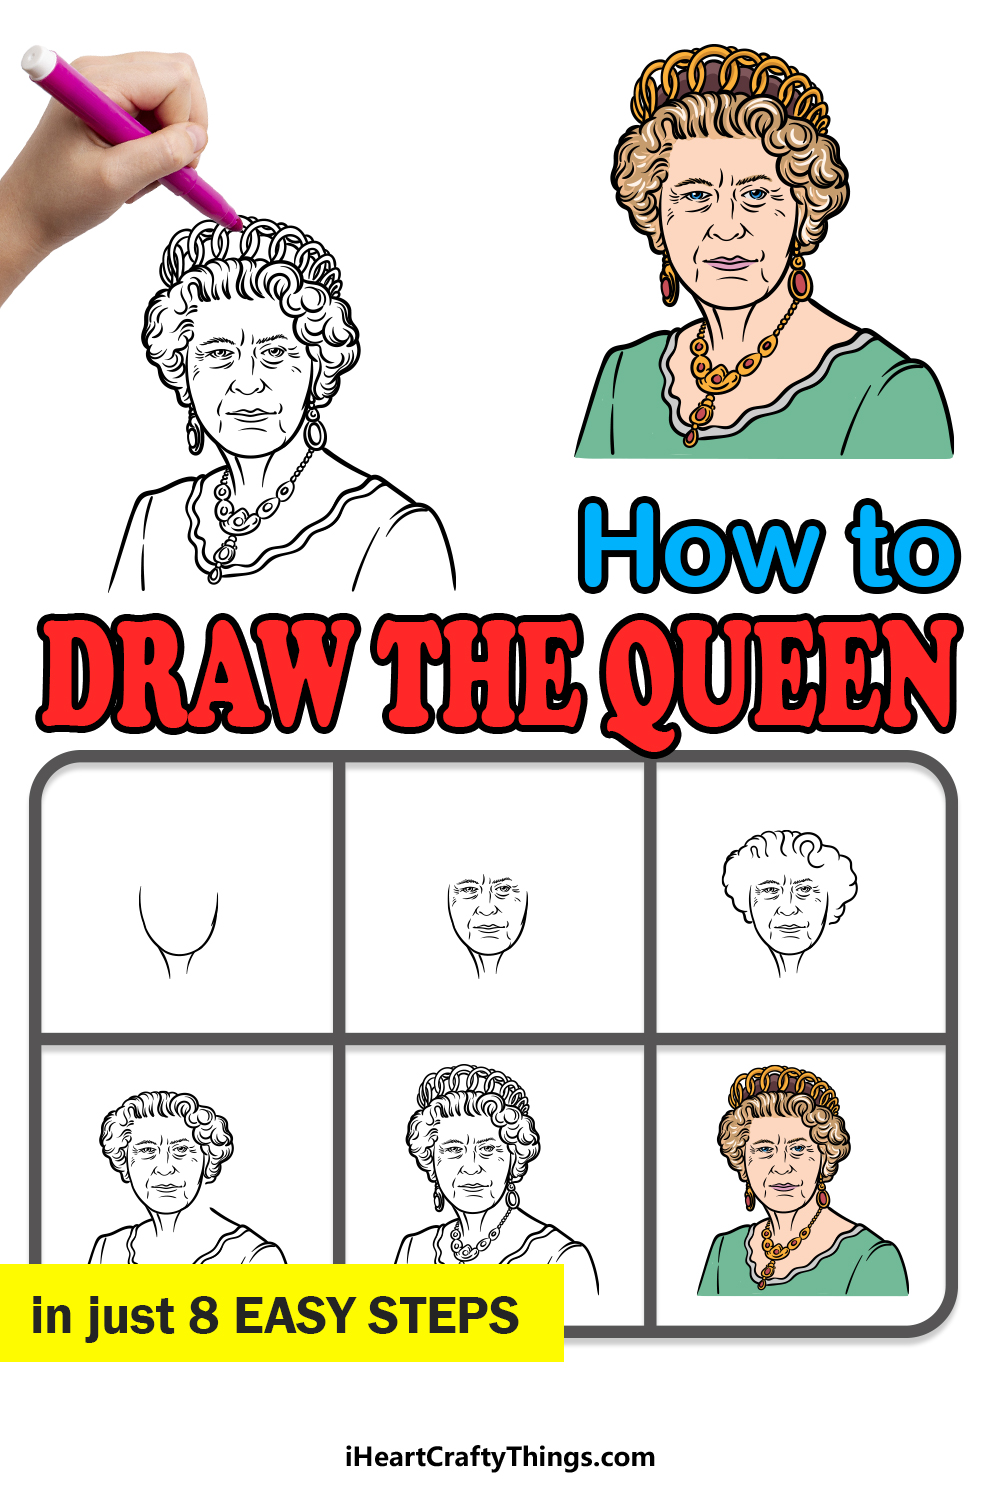 how to draw the Queen in 8 easy steps